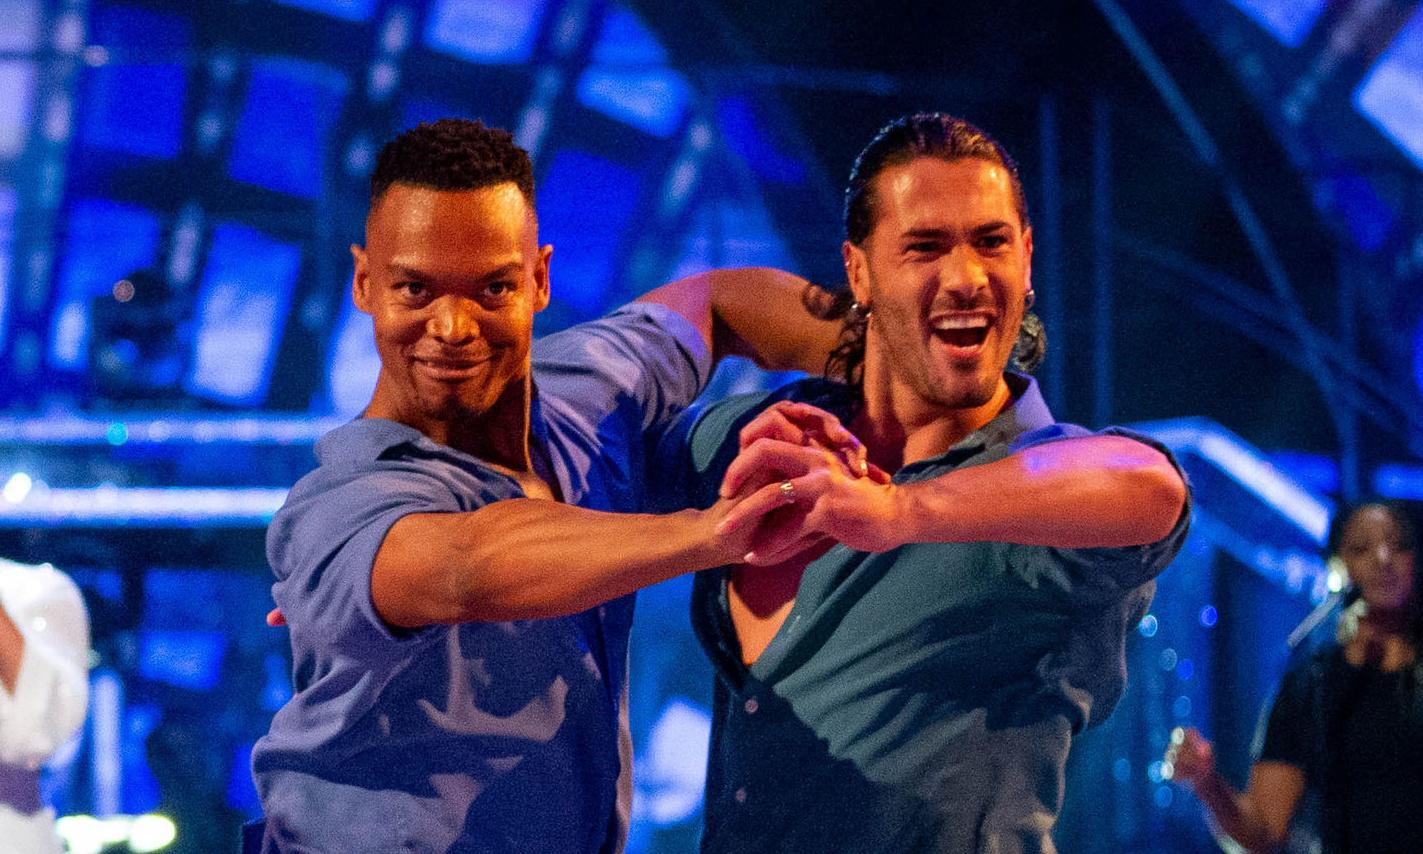 Strictly Come Dancing's first same-sex routine sparks almost 200 complaints